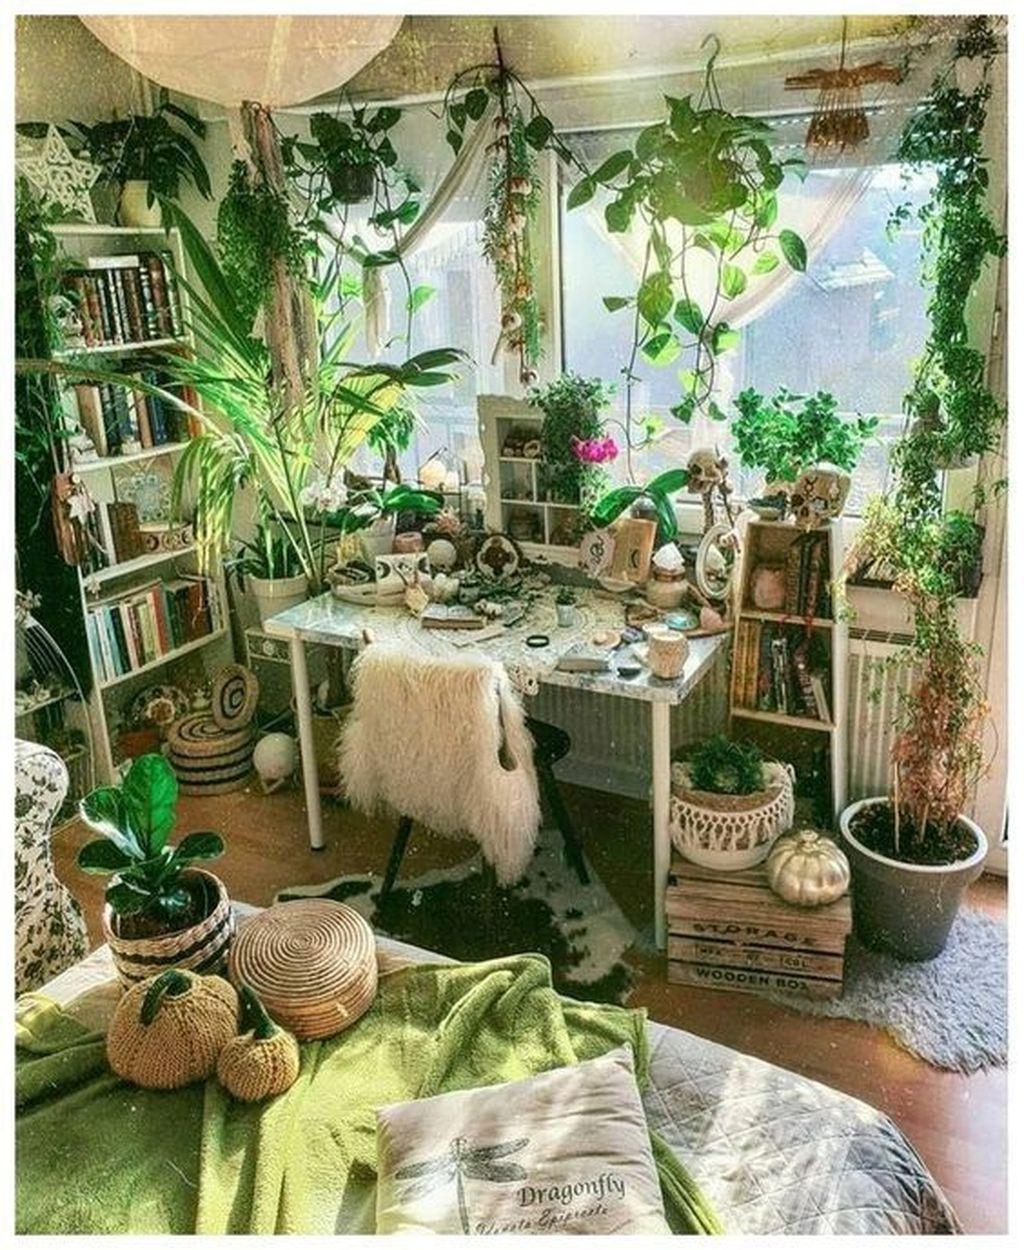 Stunning Hippie Room Decor Ideas You Never Seen Before 32